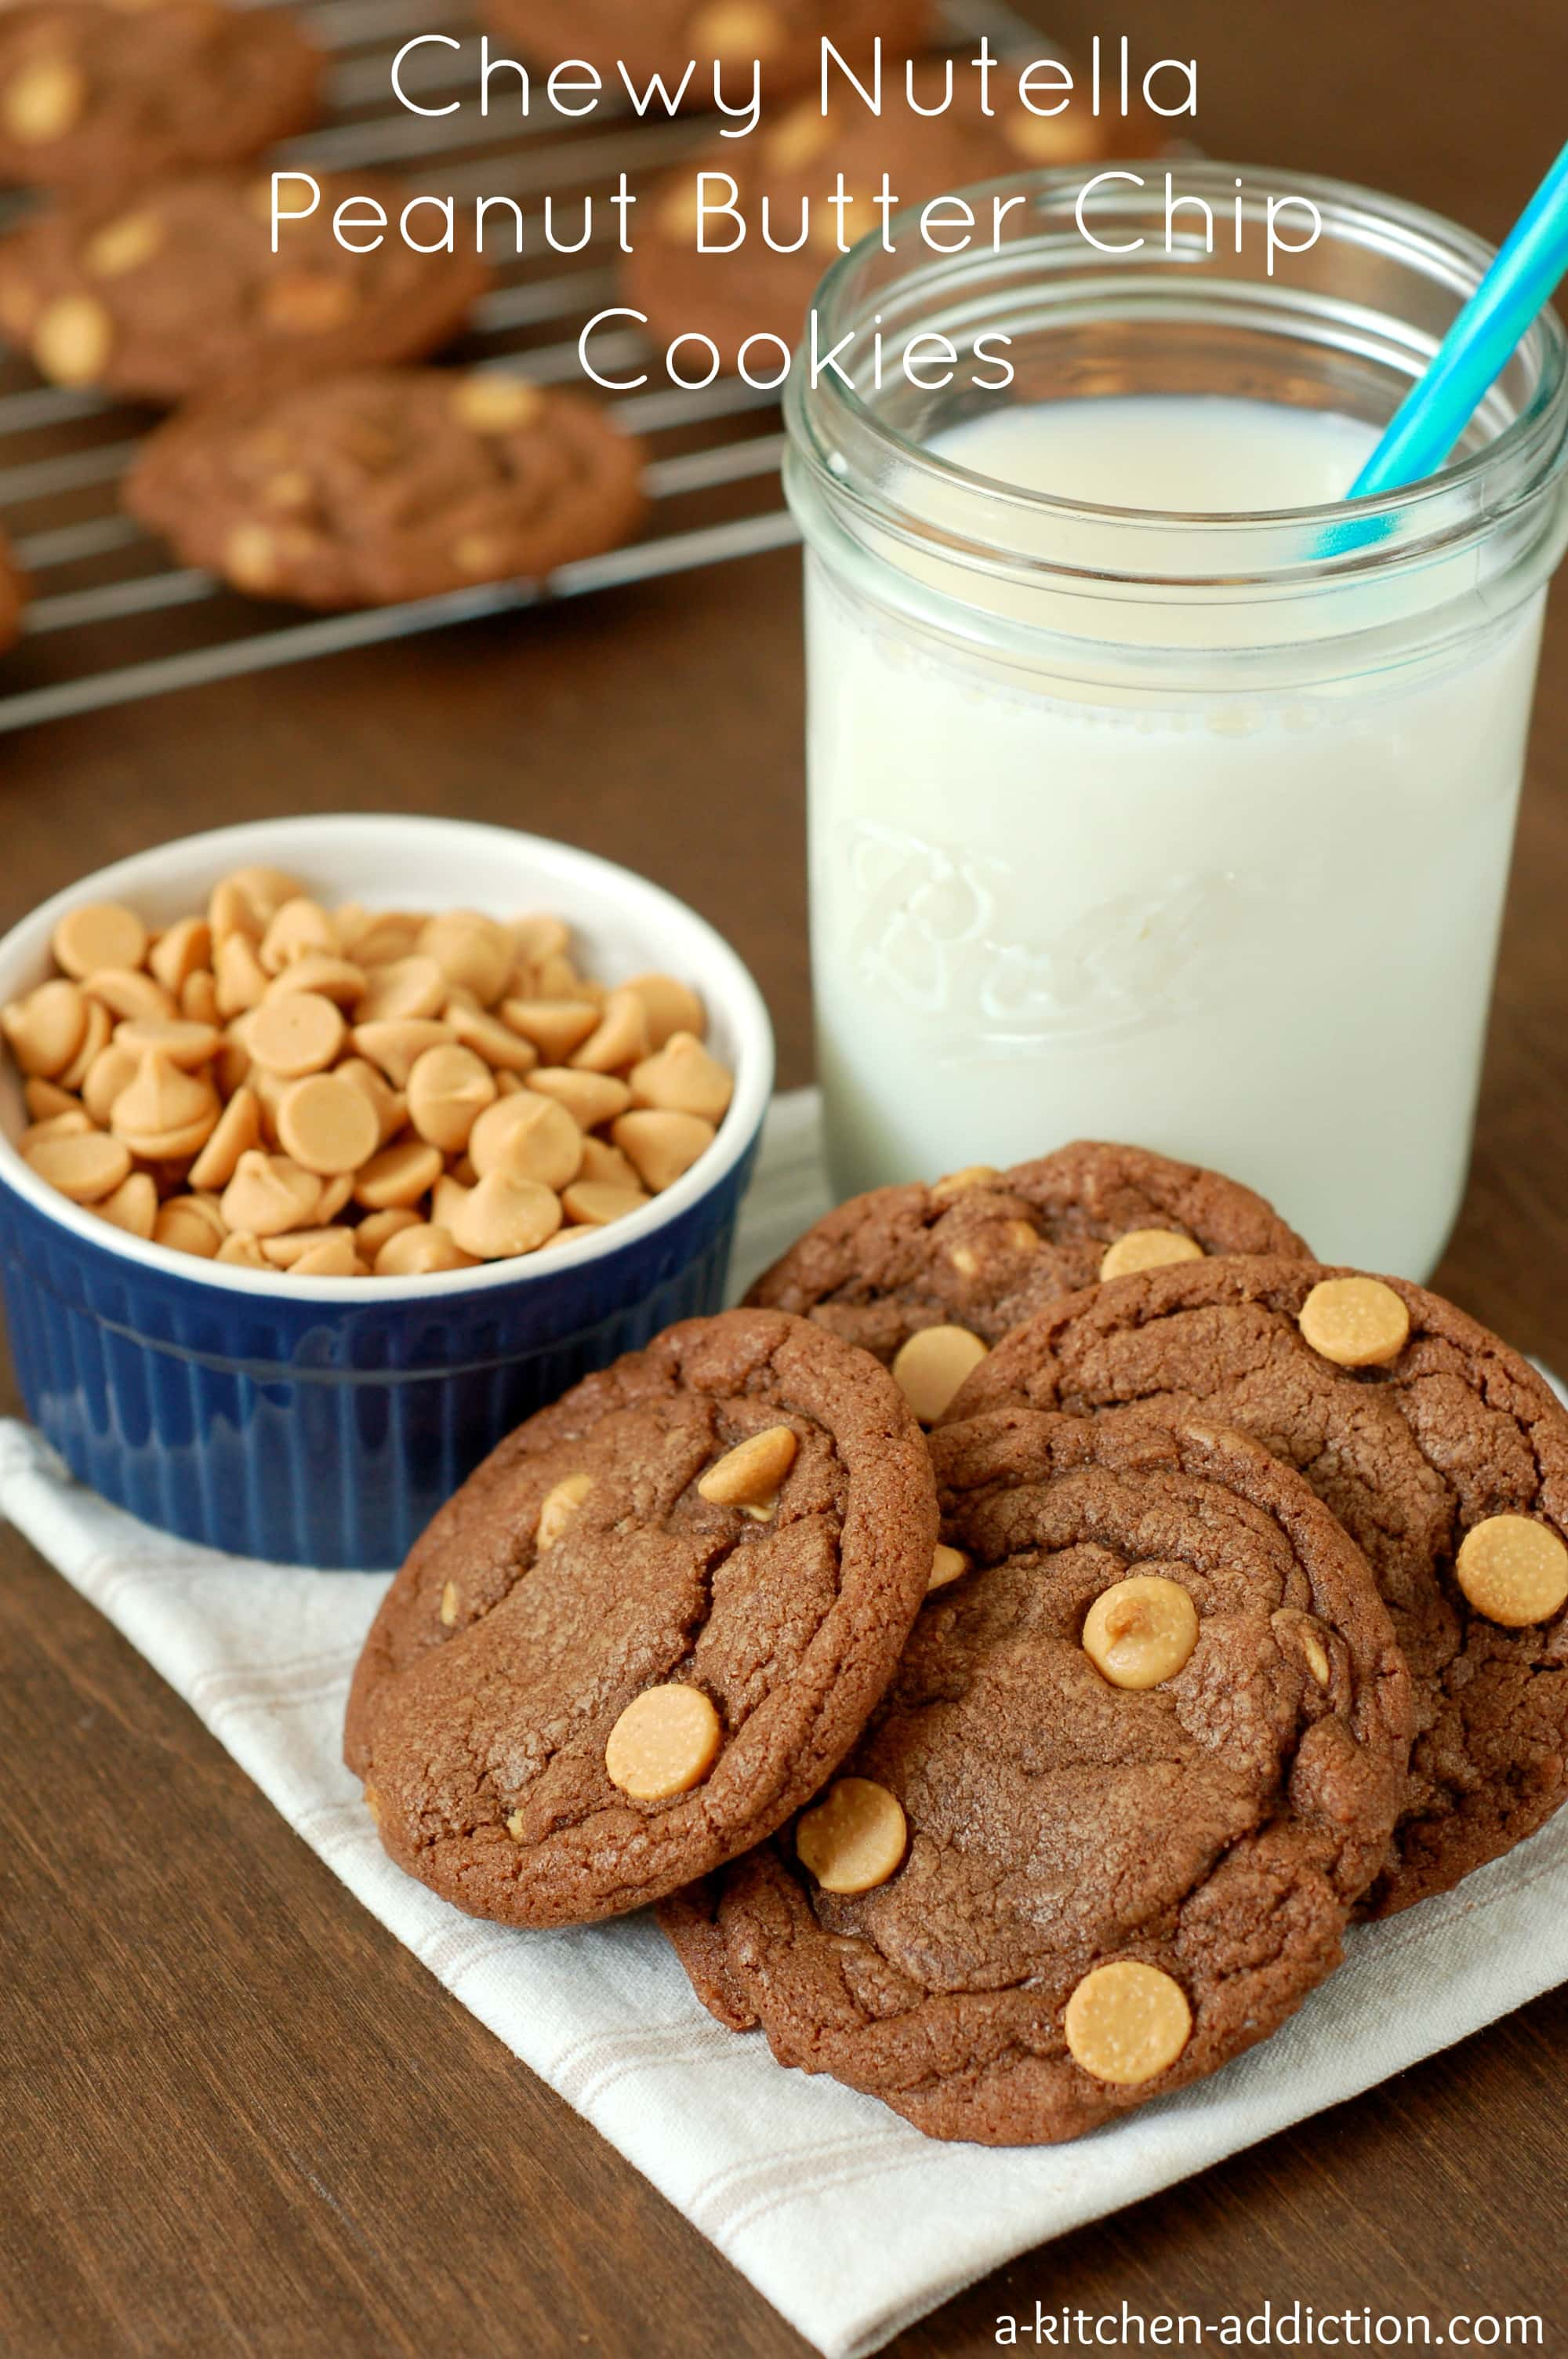 Chewy nutella peanut butter chip cookies a kitchen addiction for A kitchen addiction